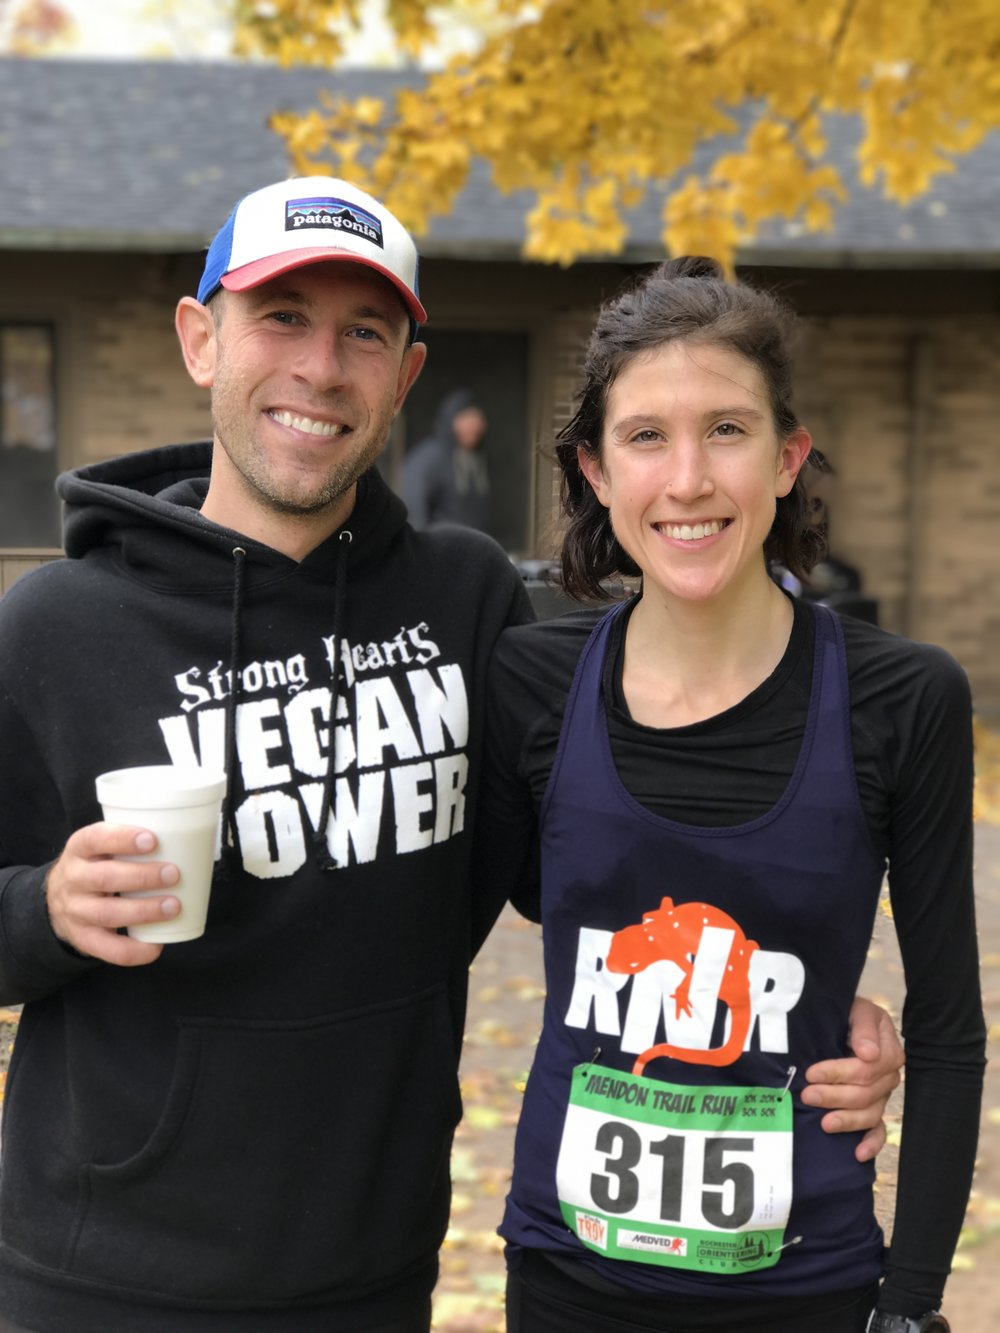 Jason Mintz and Ellie Pell at Mendon 50k (p:Chris O'Brien)